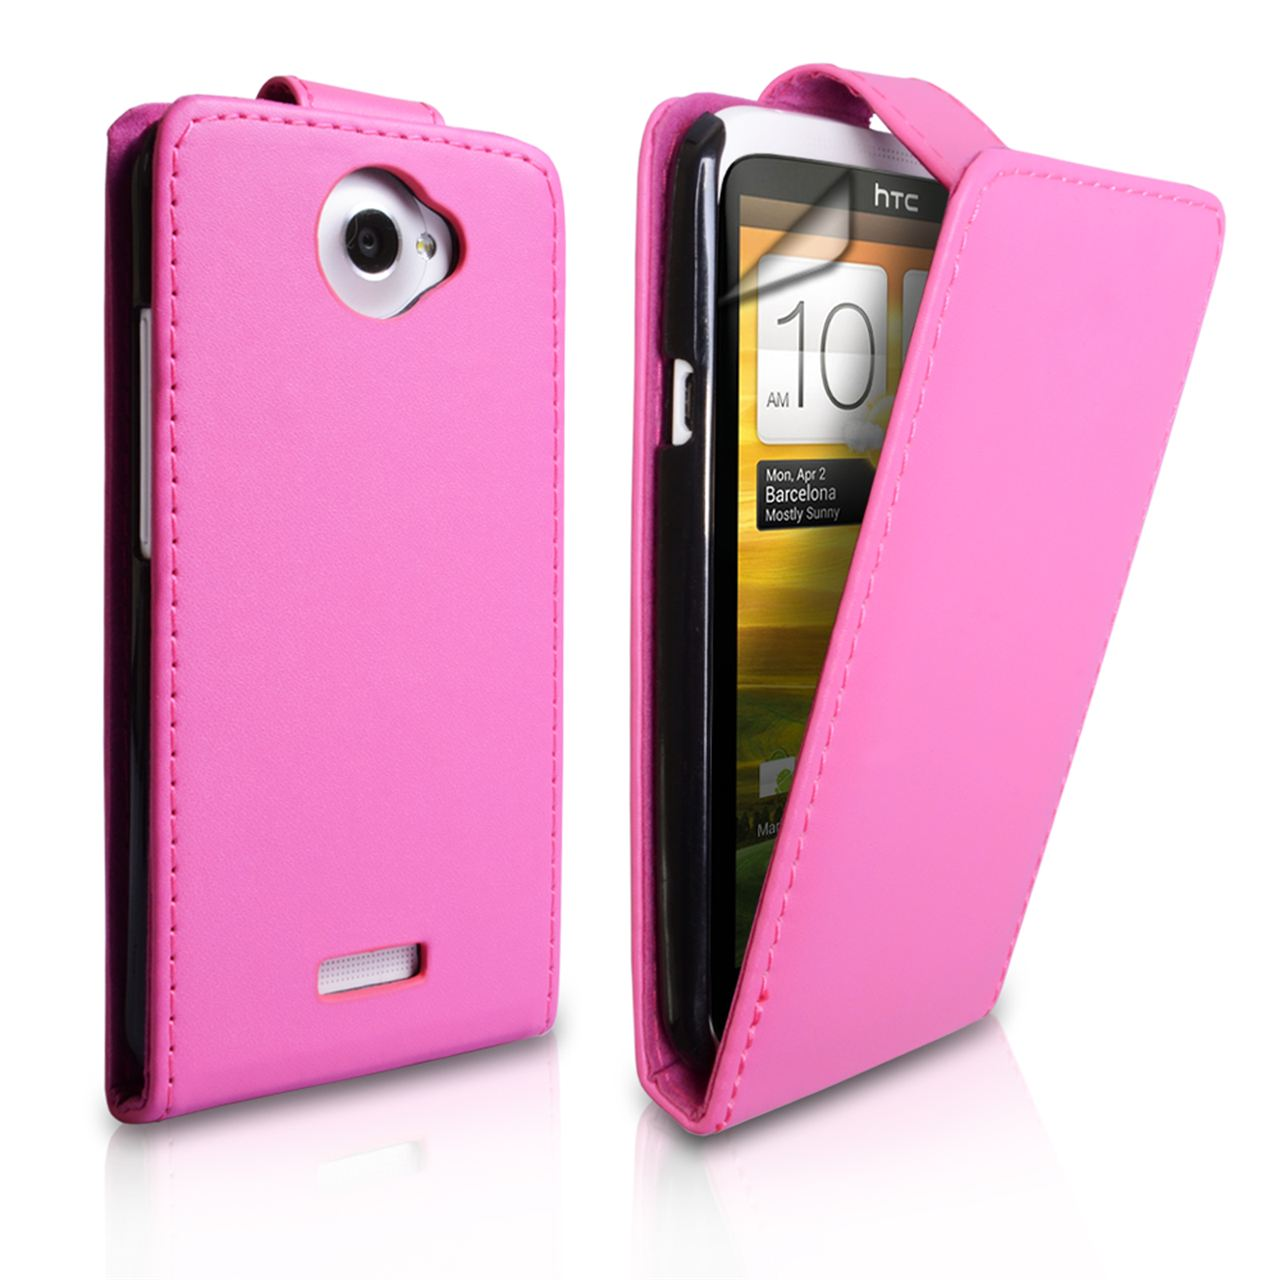 YouSave Accessories HTC One X Leather-Effect Flip Case - Hot Pink